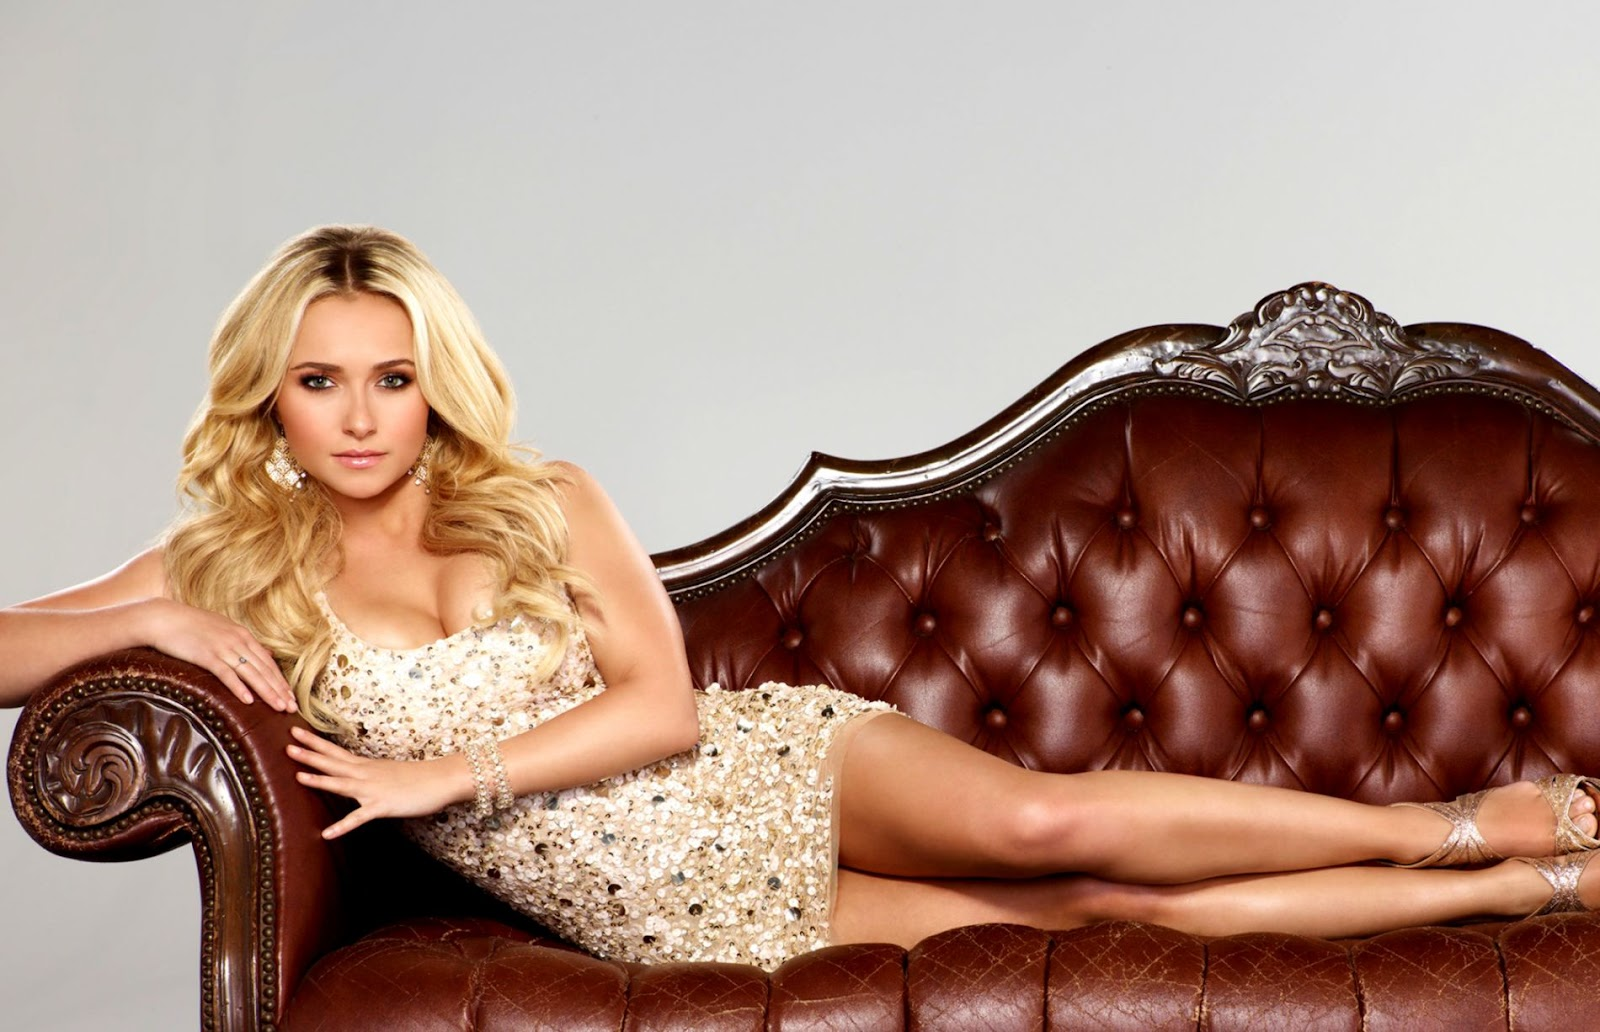 Free download Hayden Panettiere background ID hd x for